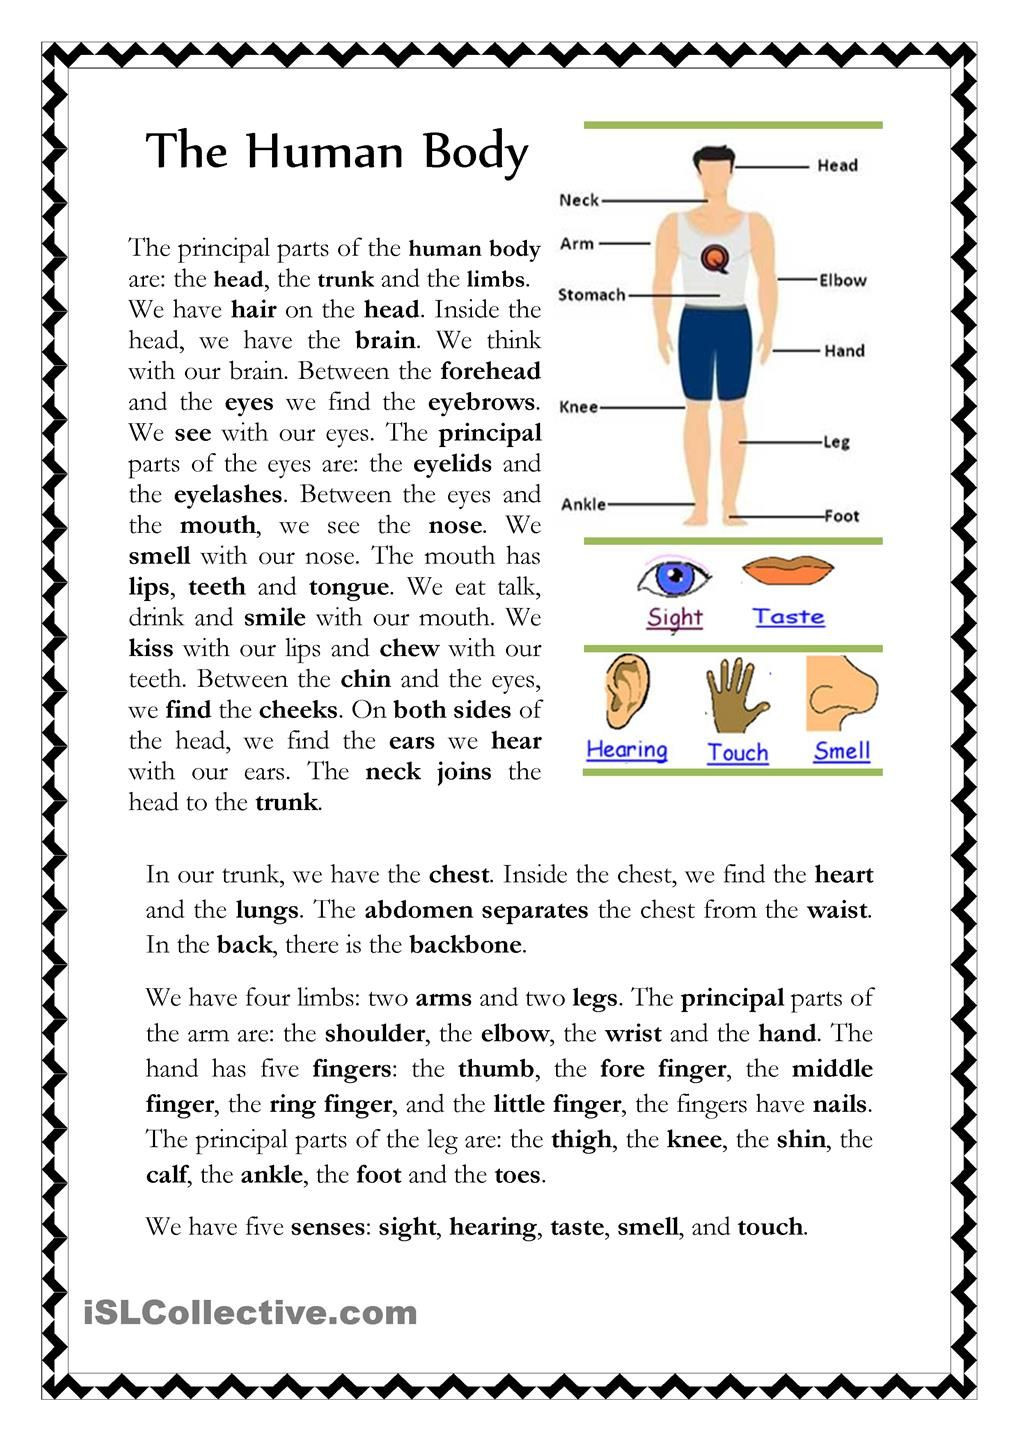 Human Body Worksheets Middle School the Human Body Worksheets Vocabulary Prehension Geometric